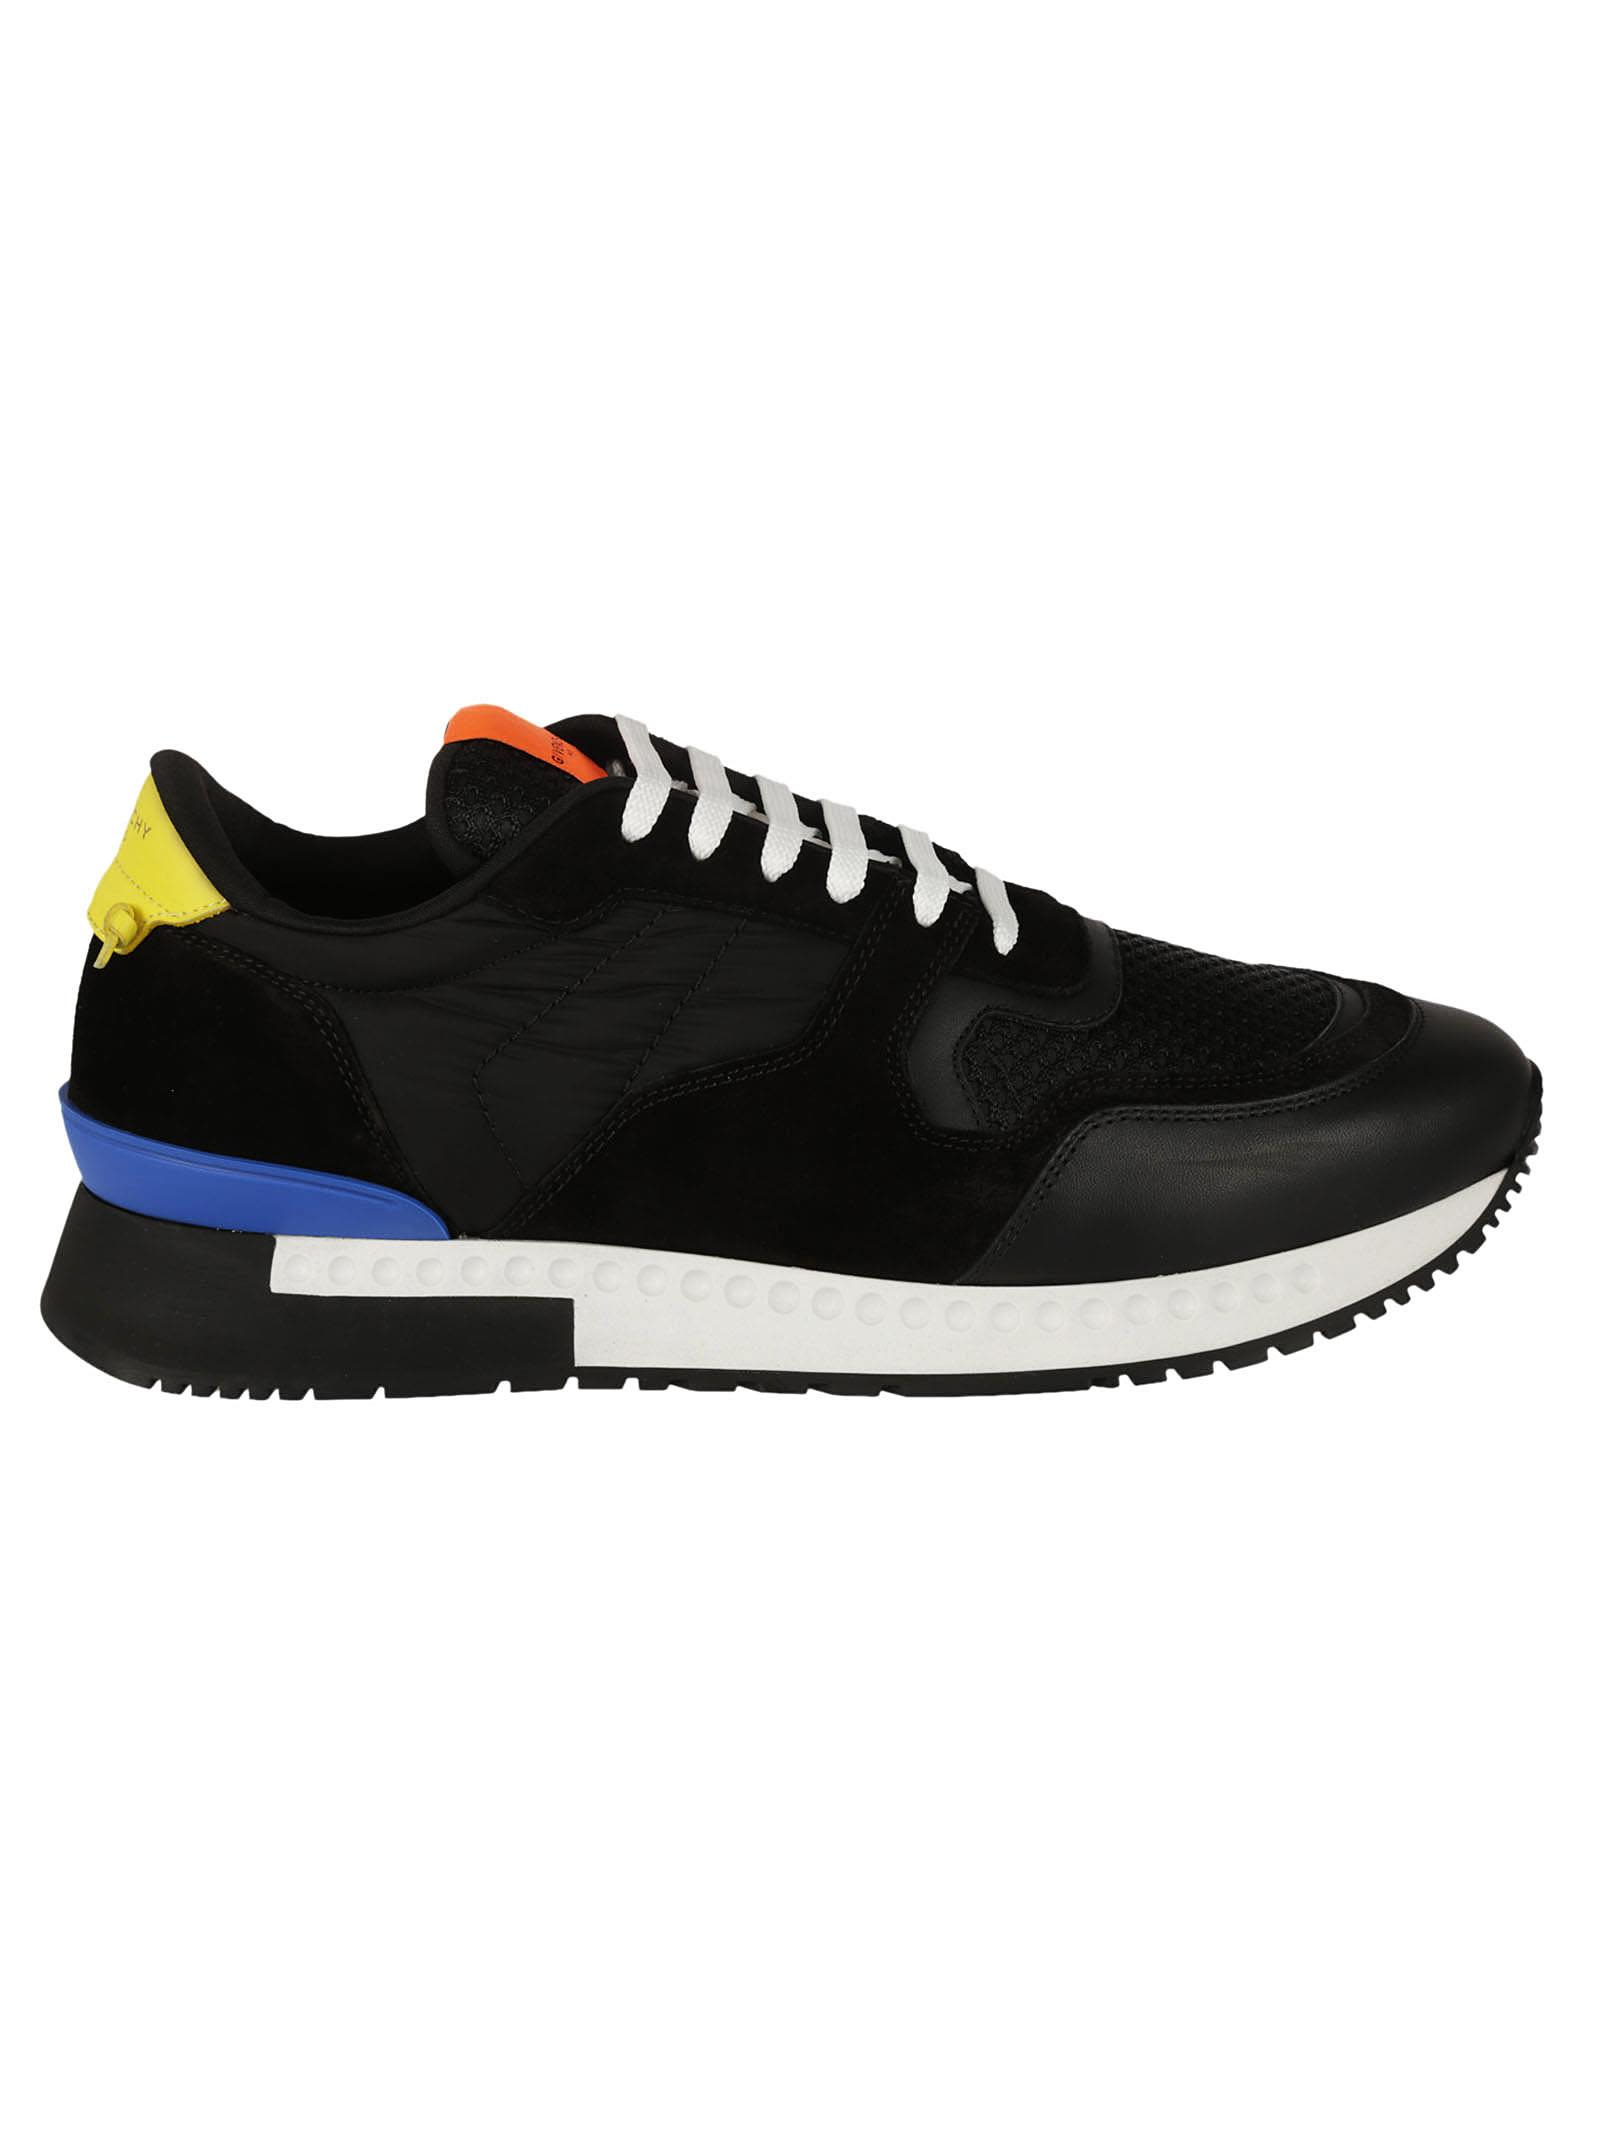 Givenchy - Givenchy Paneled Sneakers